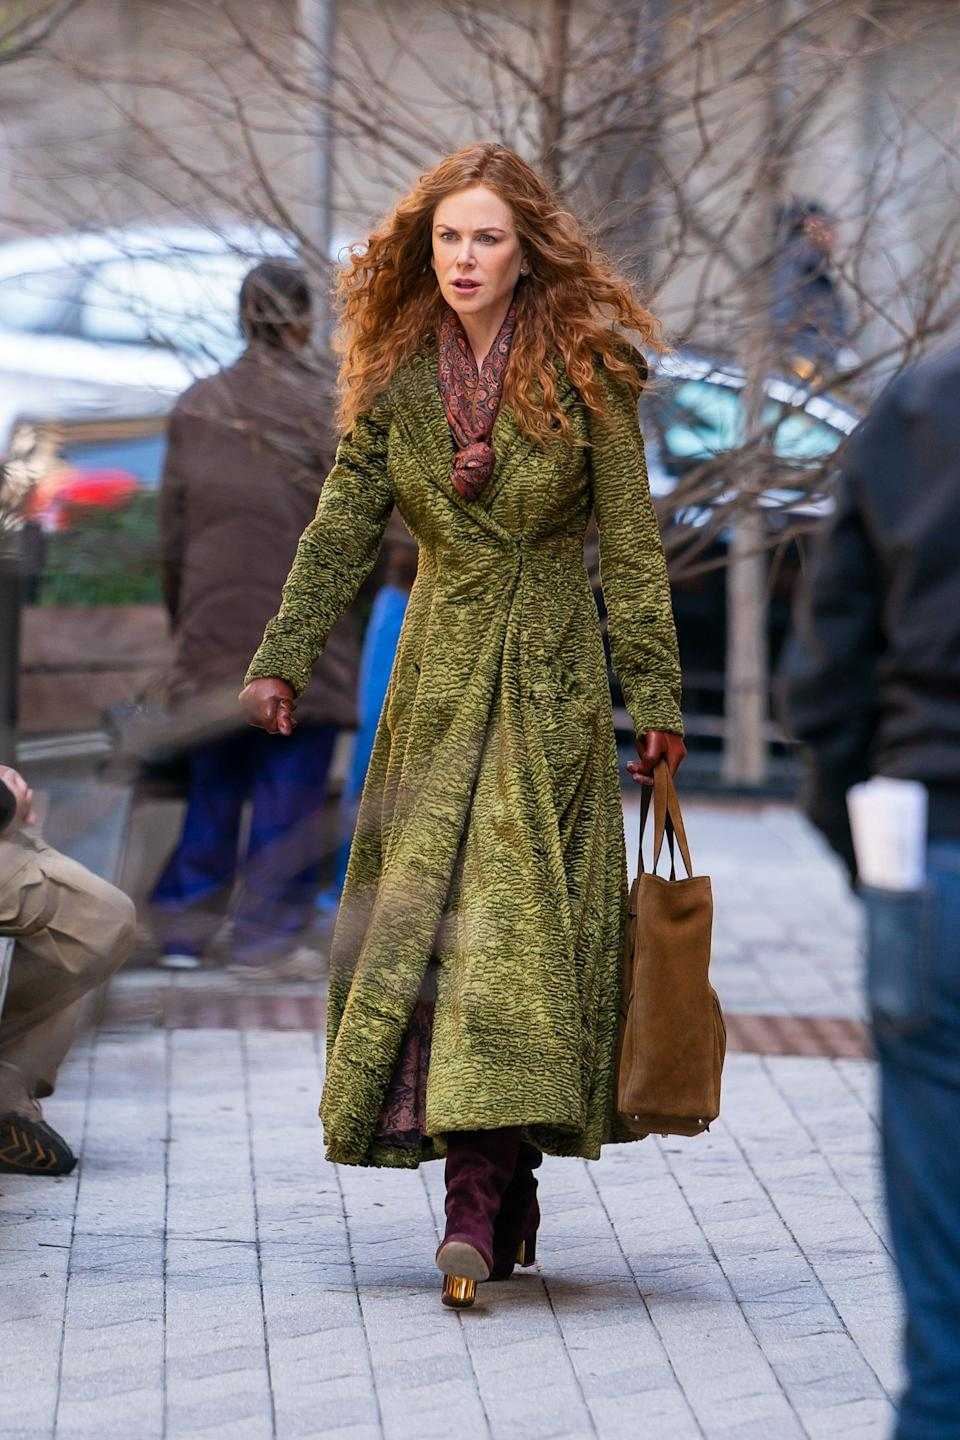 """<p>Remember how I mentioned that the green material is thick? Get this: in total, the coat weighs a whopping 15 pounds, Signe estimated. """"You can almost see how heavy it is when she walks around,"""" she said.</p>"""